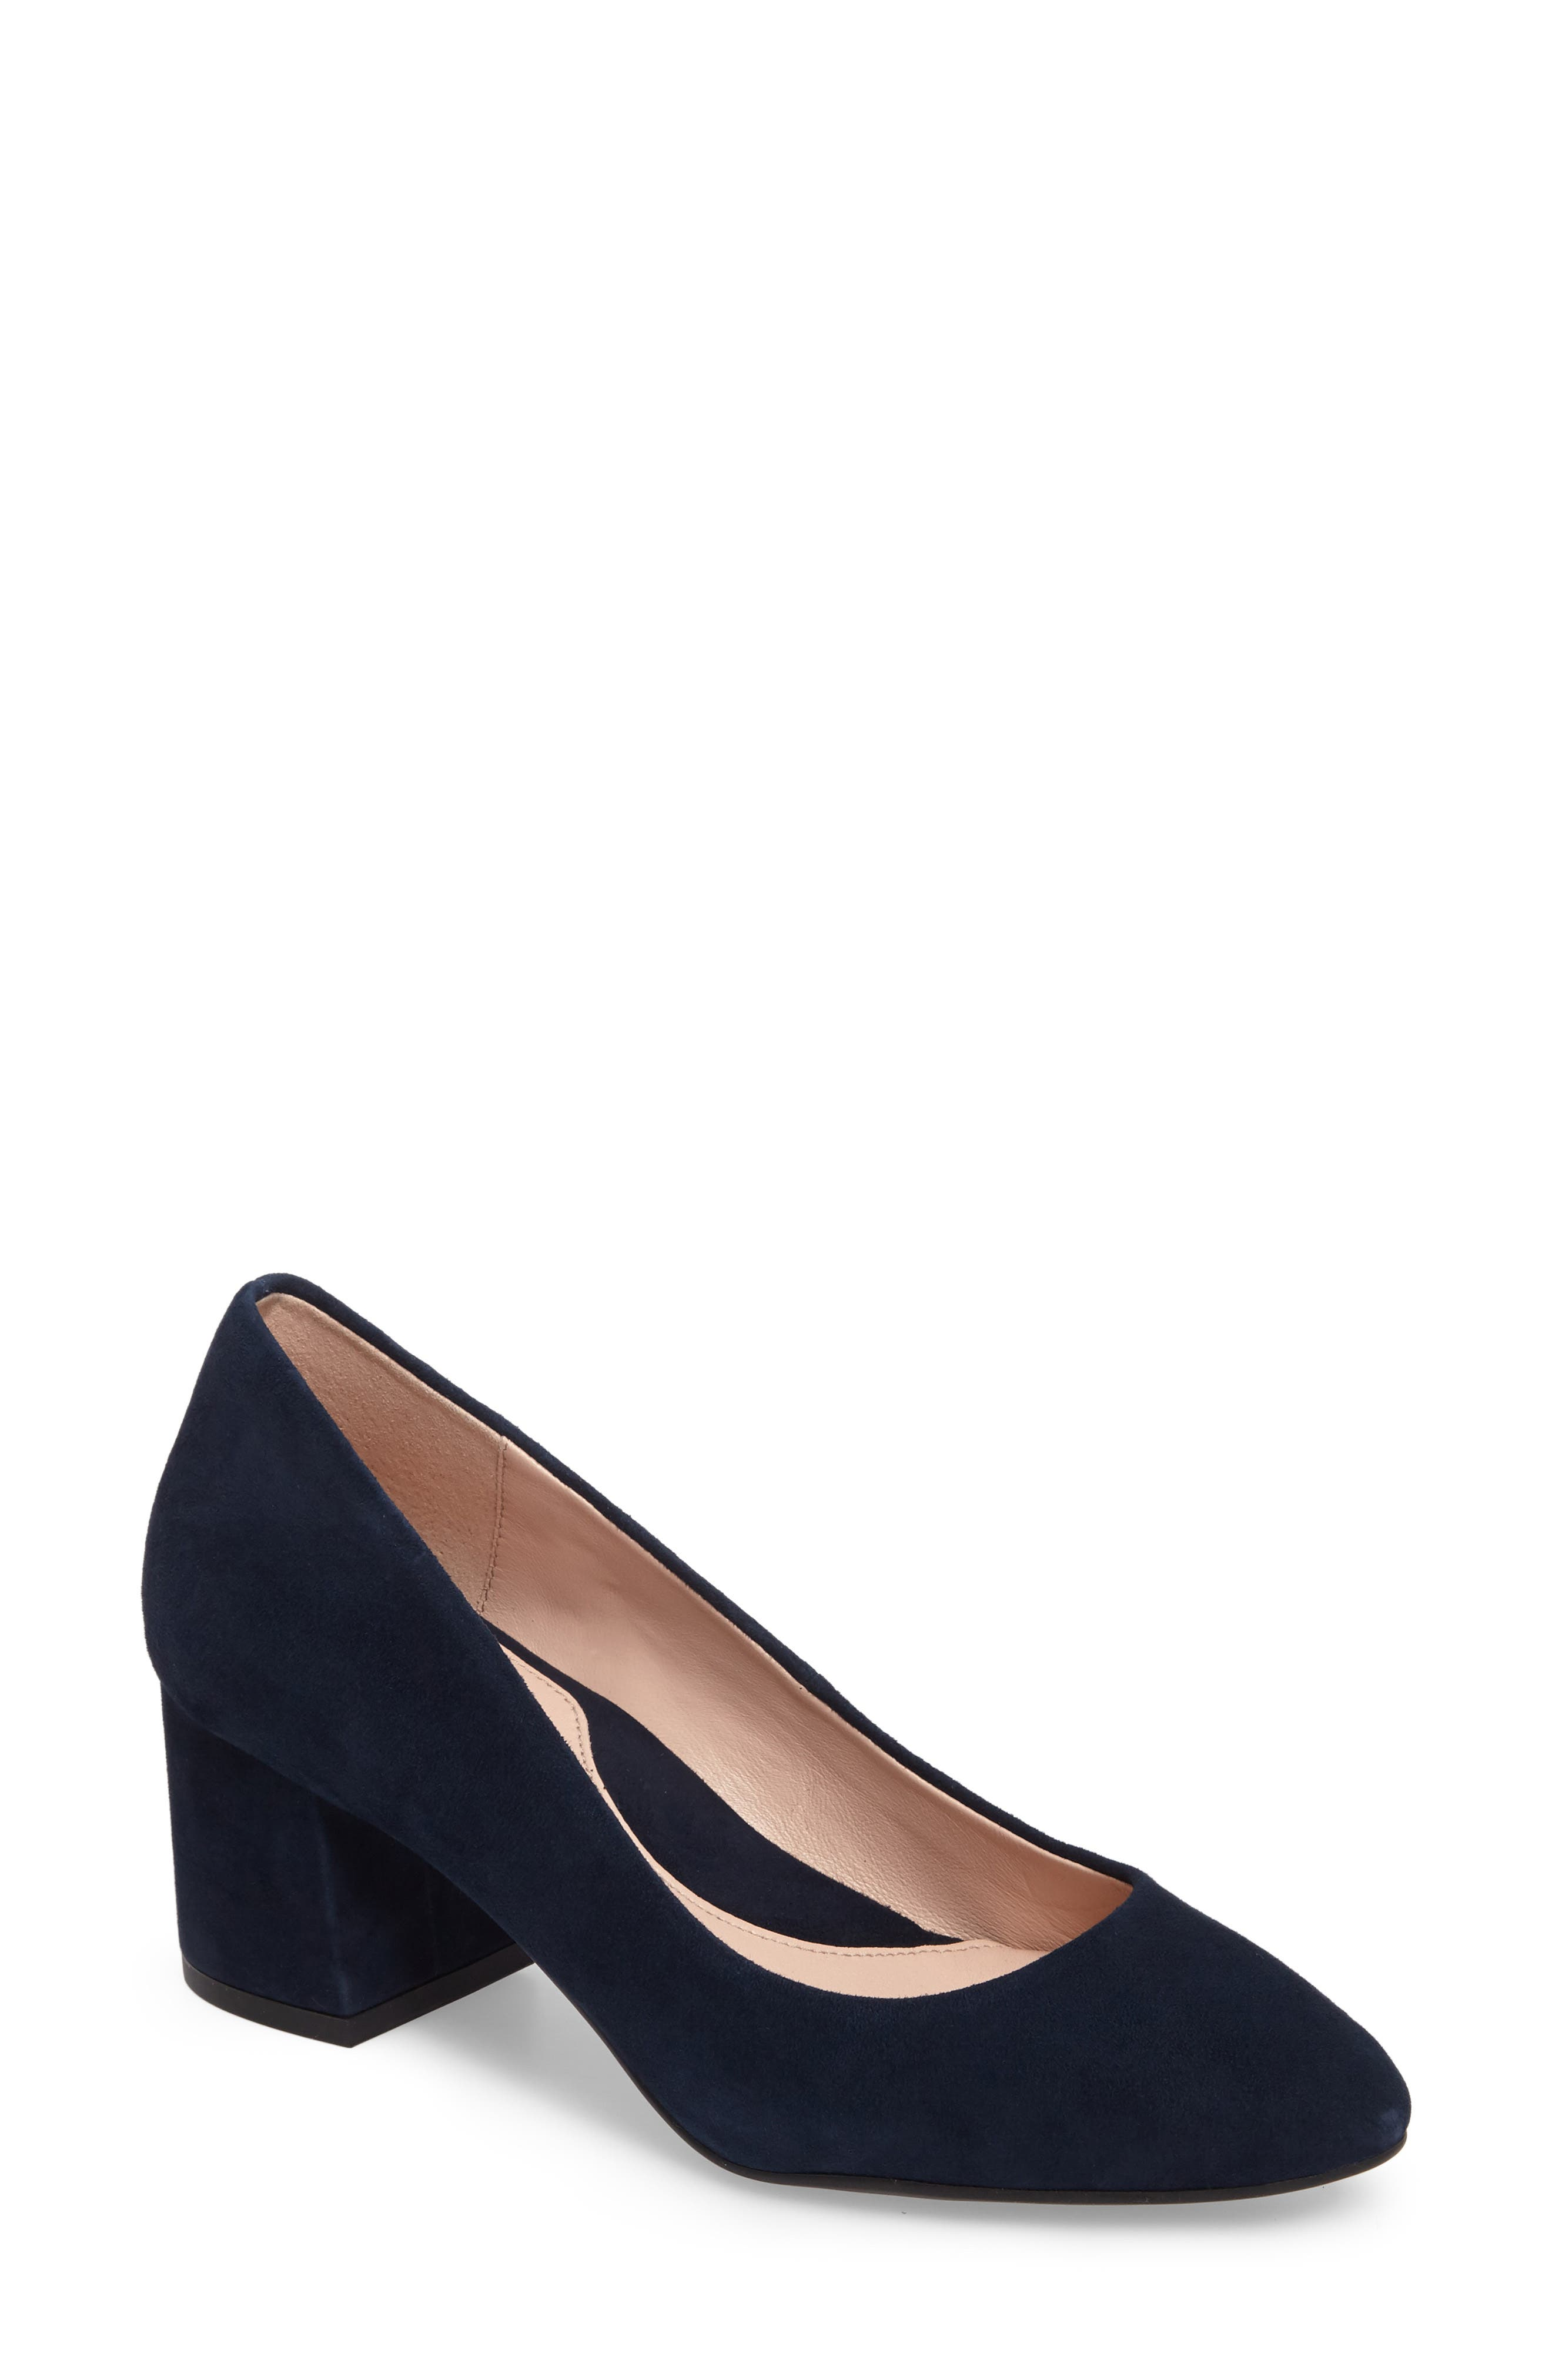 Main Image - Taryn Rose Rochelle Block Heel Pump (Women)